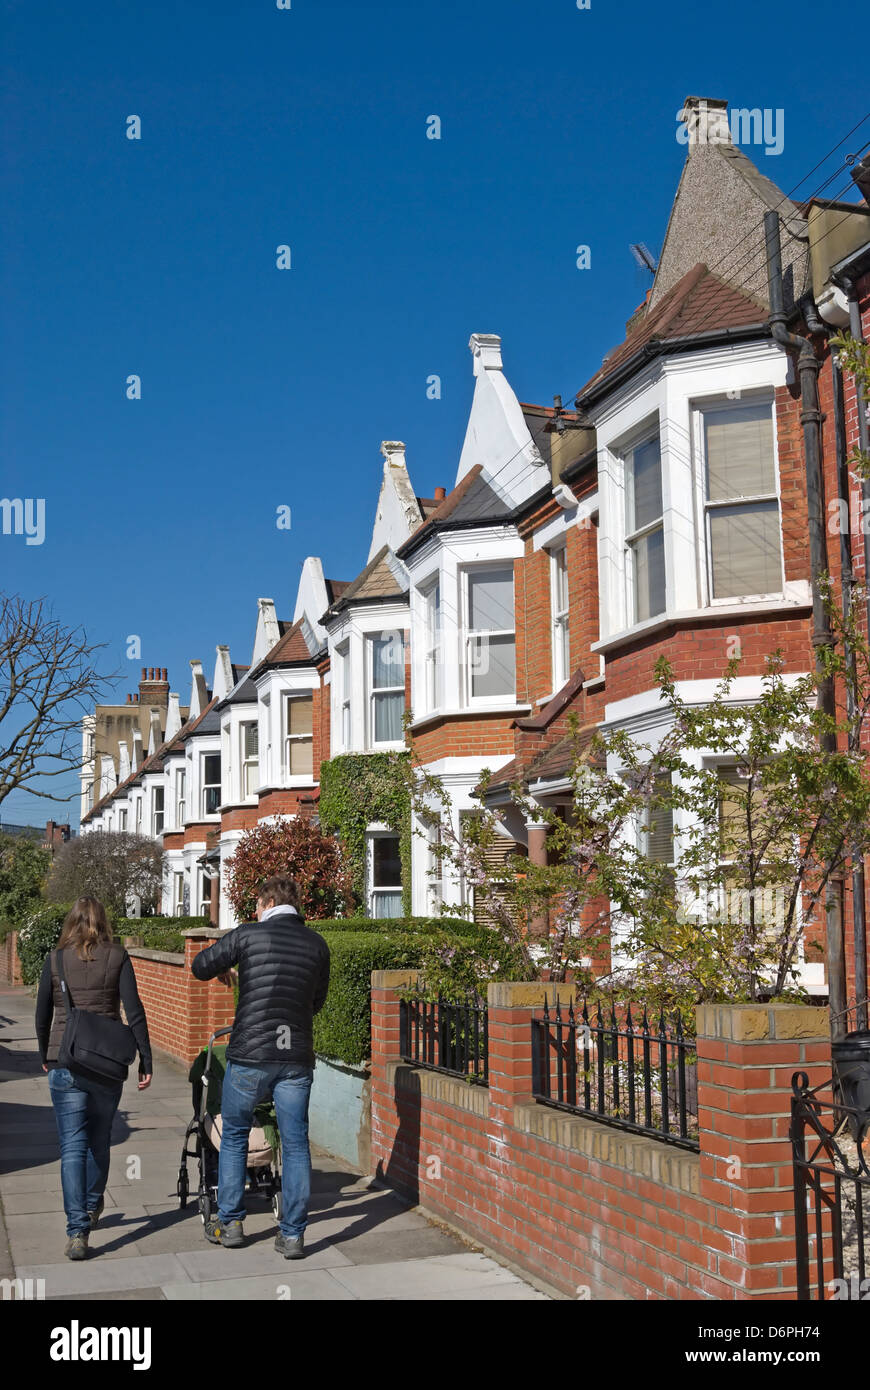 man and woman with baby buggy pass a row of 19th century houses with bay windows in wandsworth, southwest london, - Stock Image